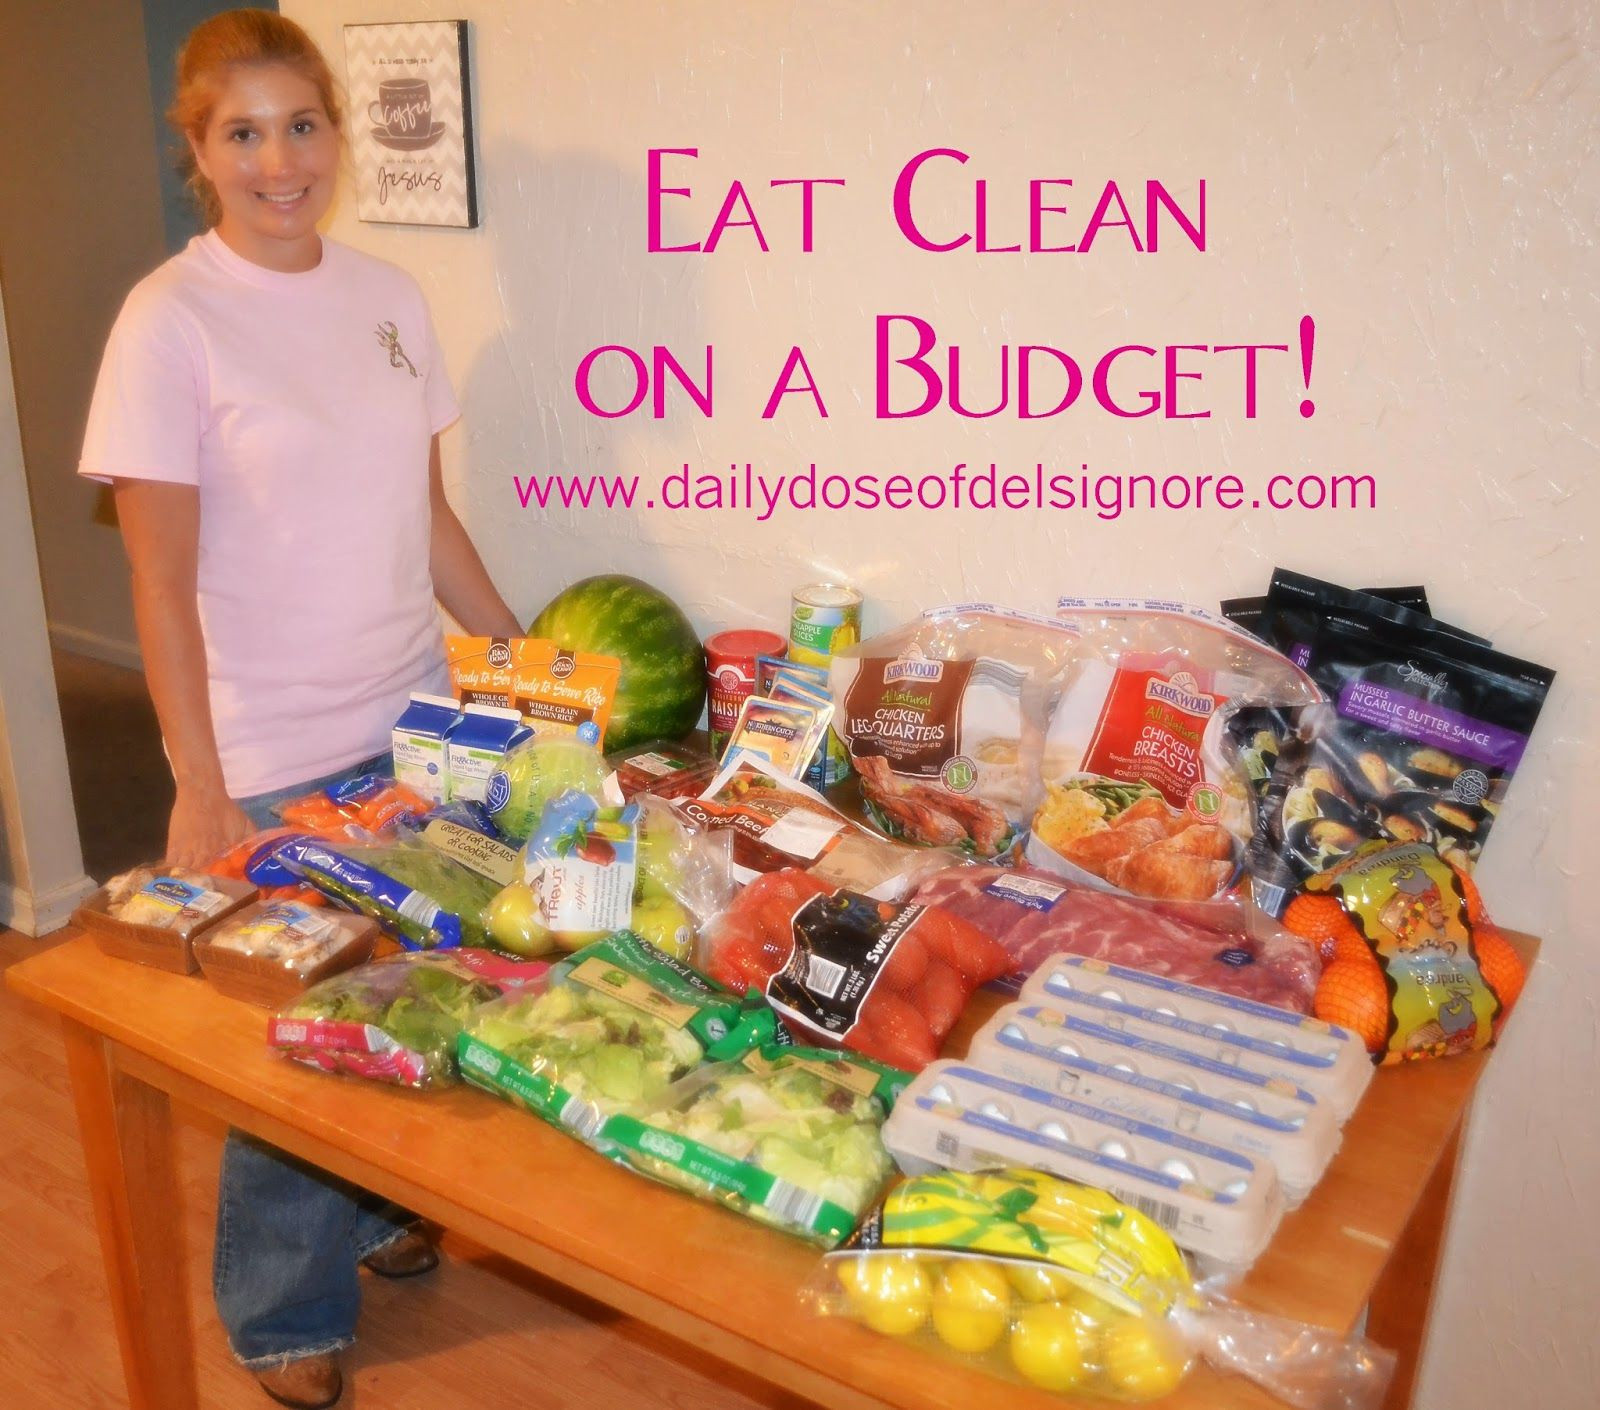 Clean Eating Meal Plan On A Budget  Eat Clean on a Bud Menu and Shopping List